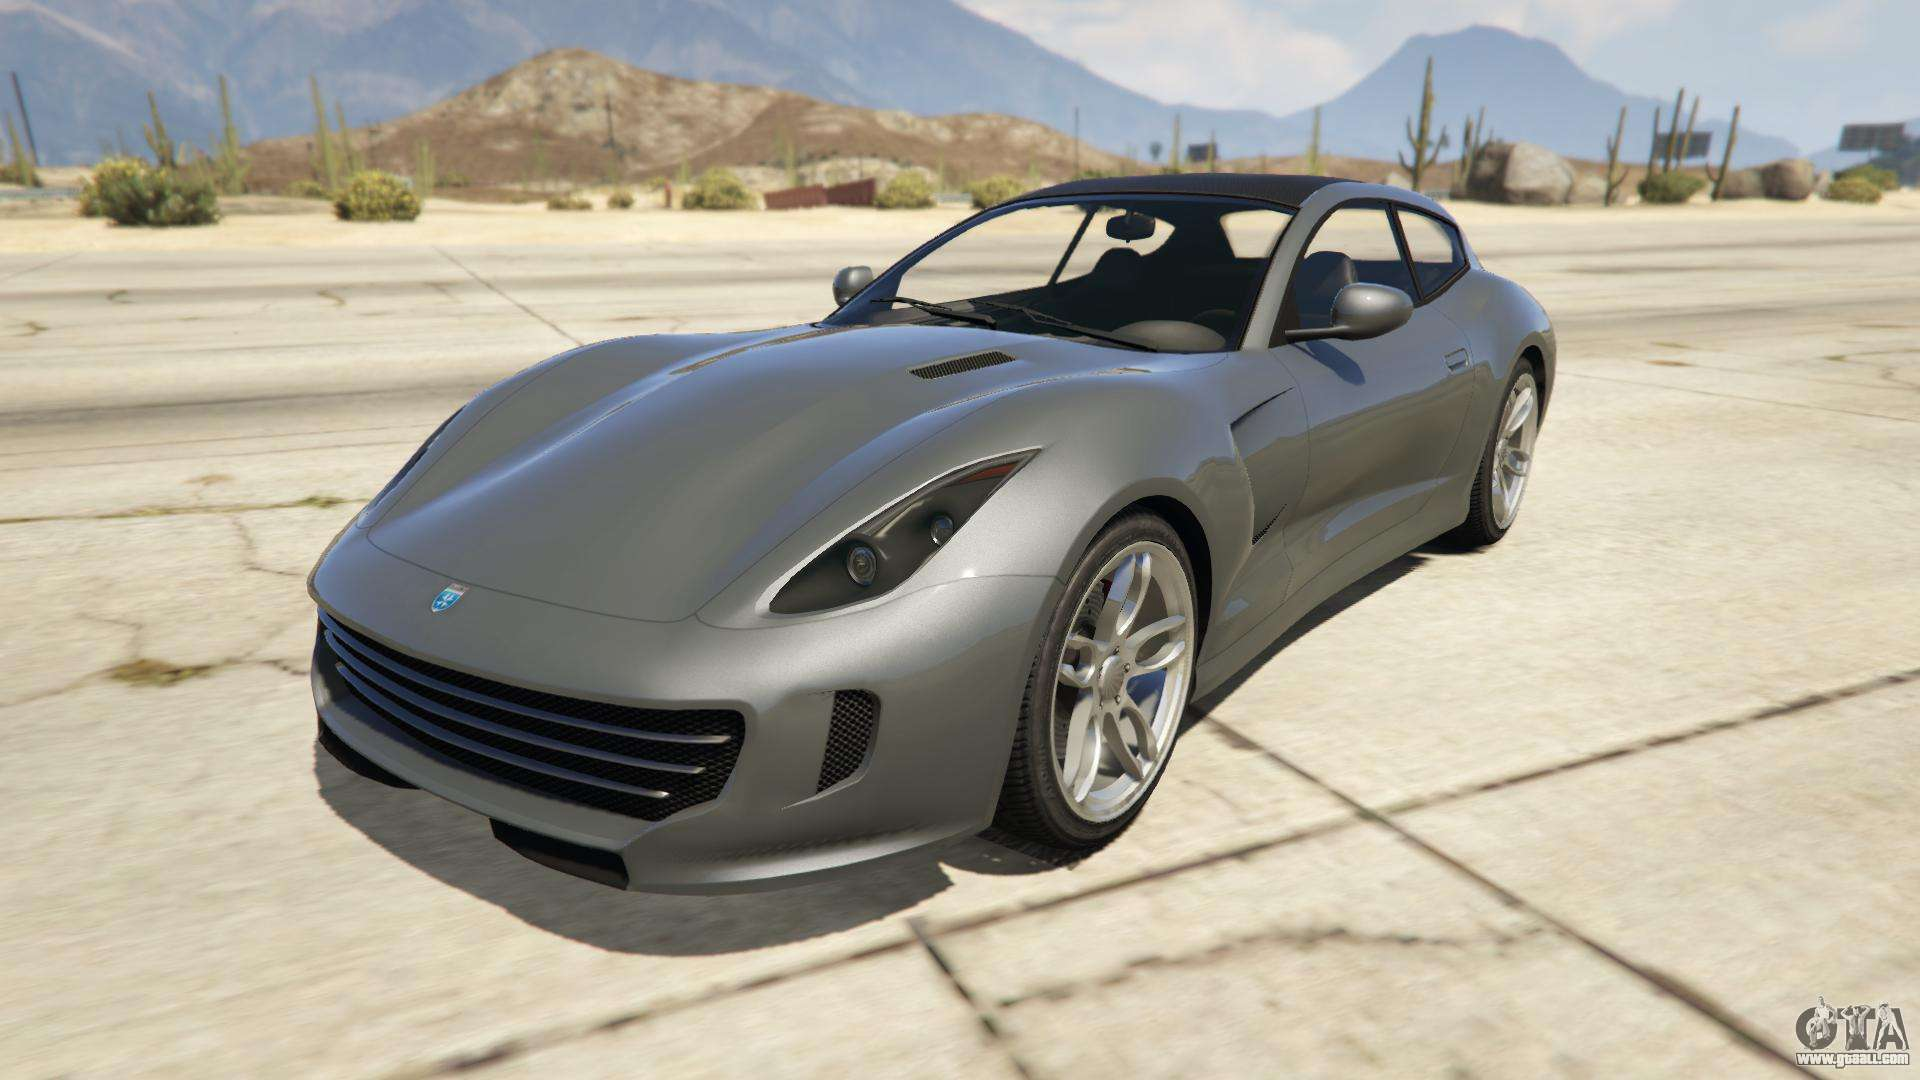 Grotti Bestia GTS from GTA Online - front view